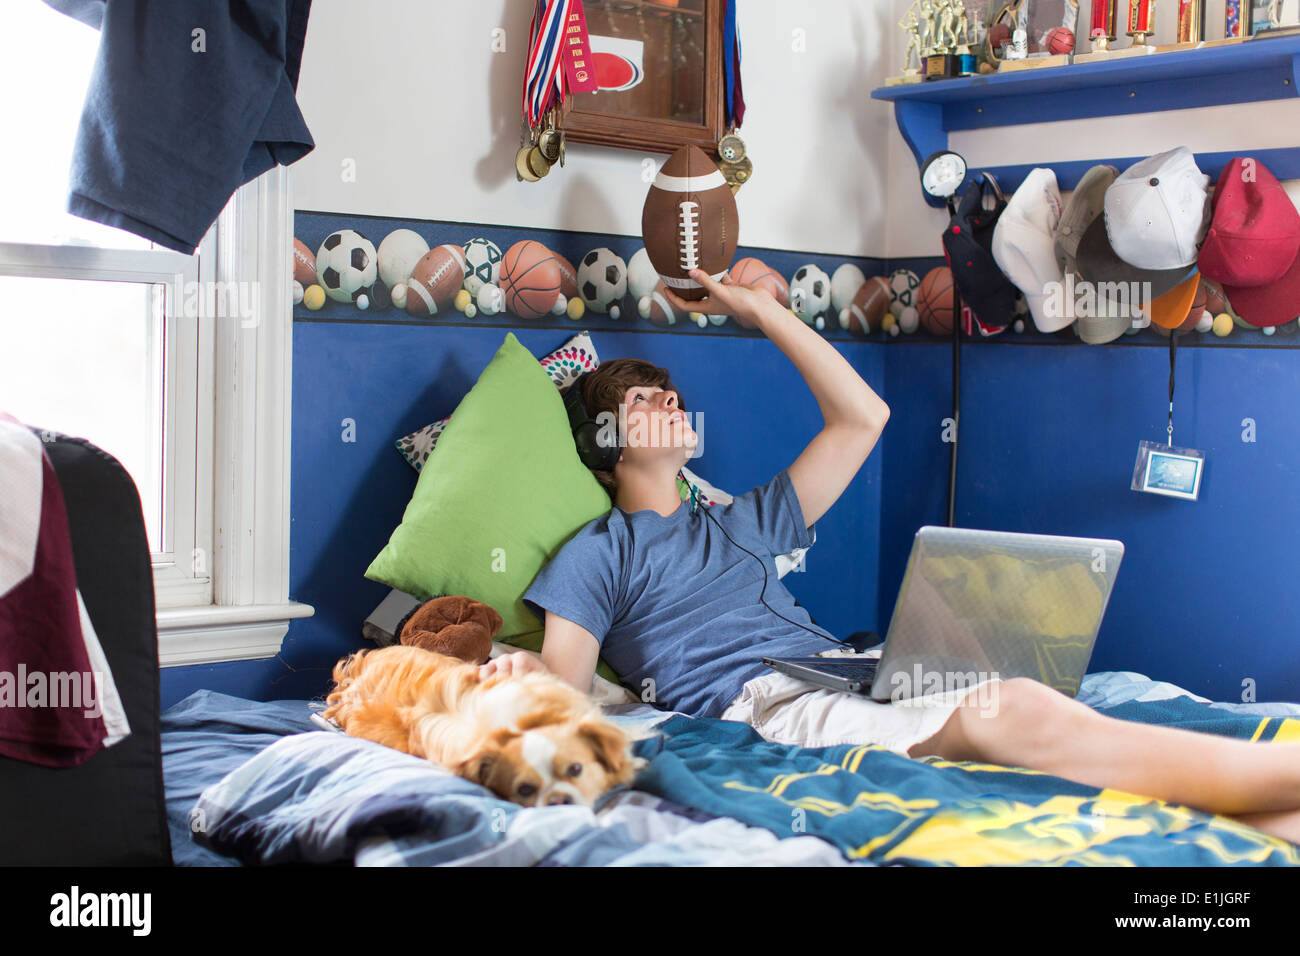 Teenage boy lying on bed with laptop computer, football and dog Stock Photo